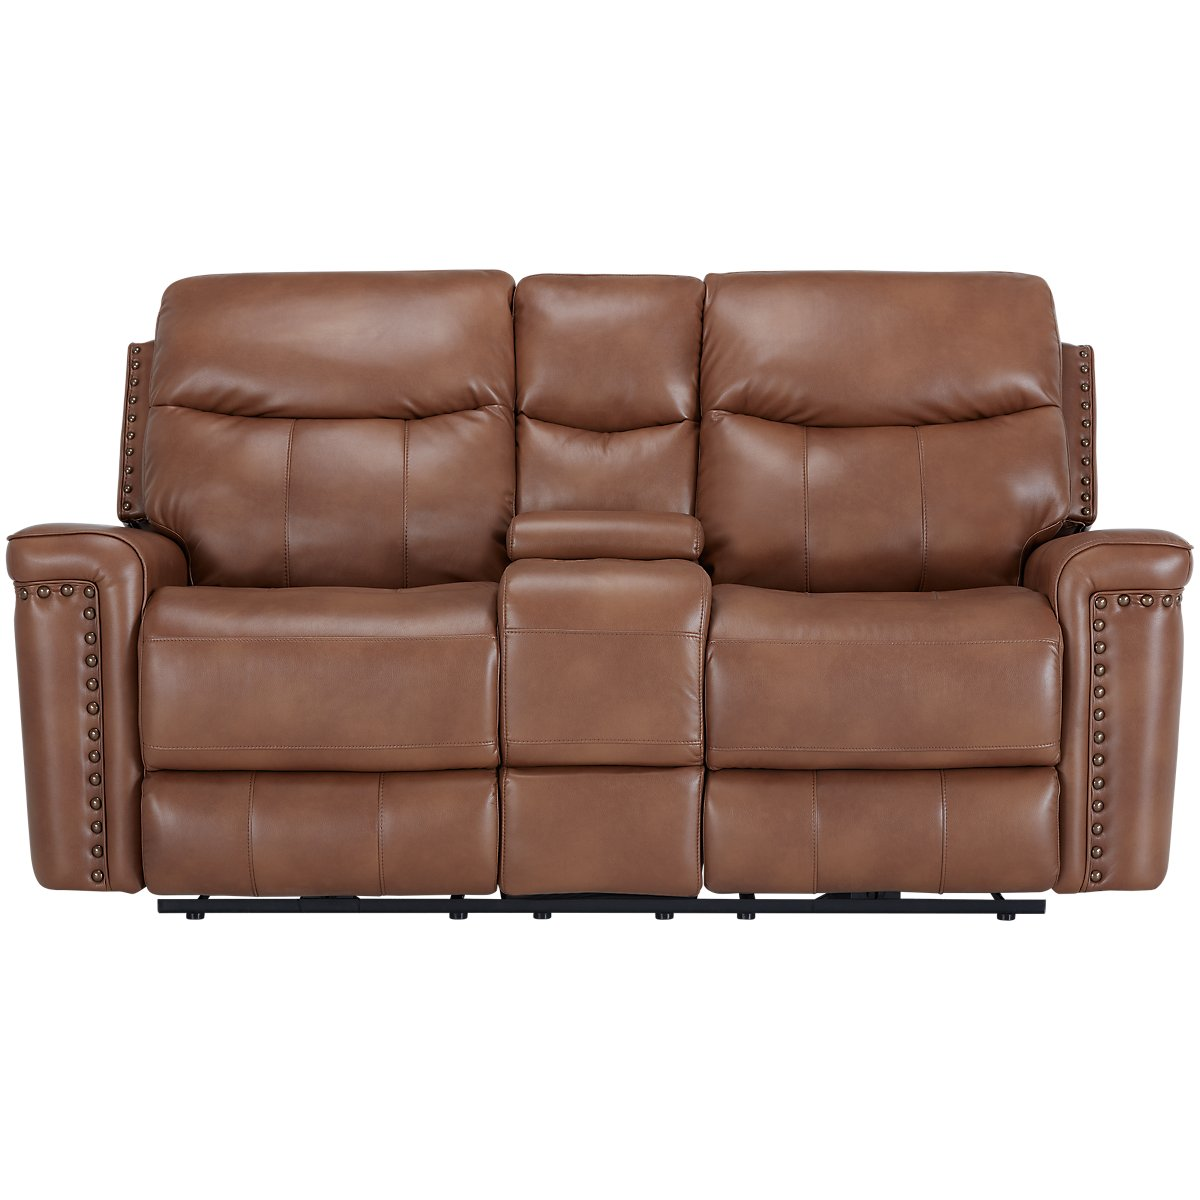 Wallace Medium Brown Microfiber Reclining Console Loveseat